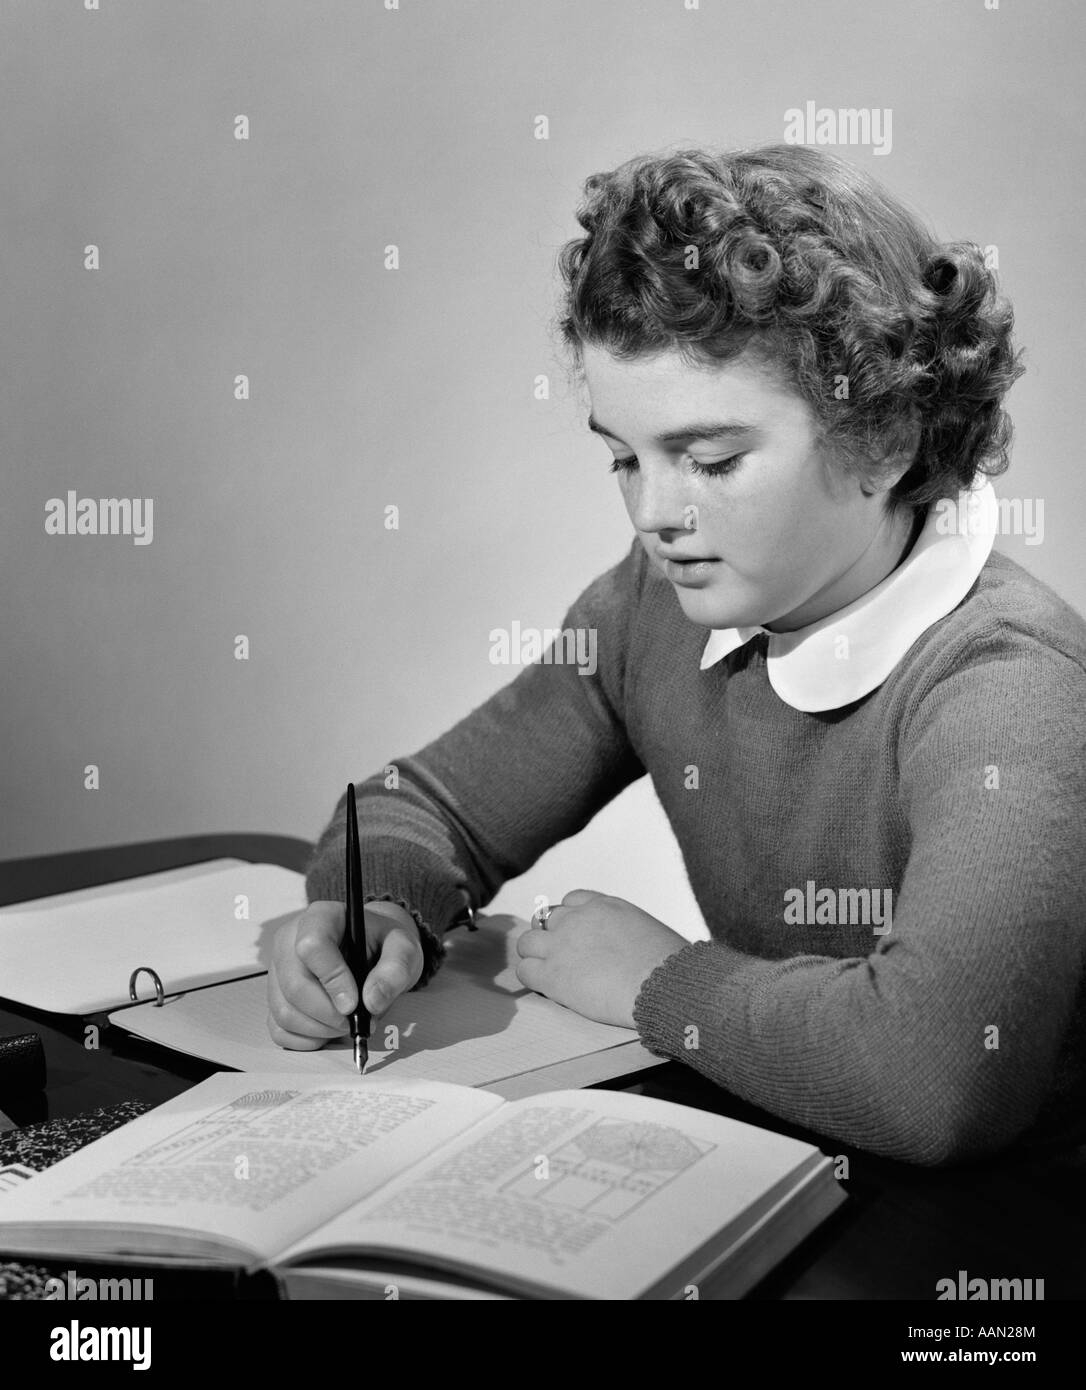 1940s YOUNG GIRL IN SCHOOL UNIFORM STUDYING AT DESK WITH BOOKS AND NOTES - Stock Image